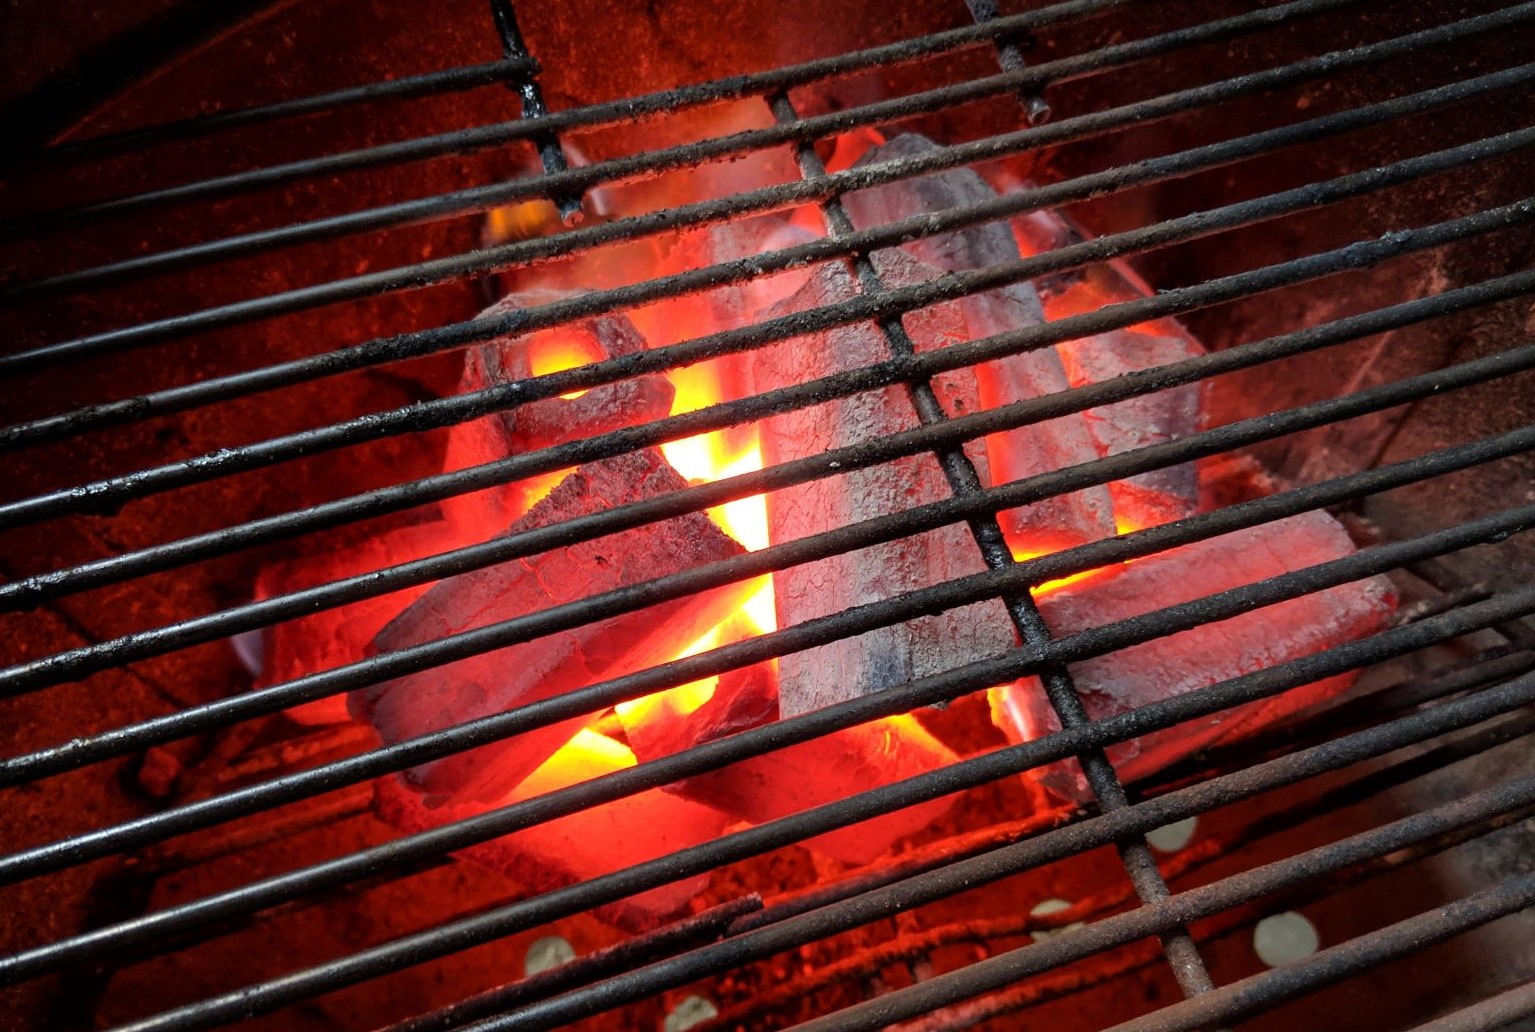 Image show long lasting glowing Hot White Charcoal Briquettes in a weber kettle